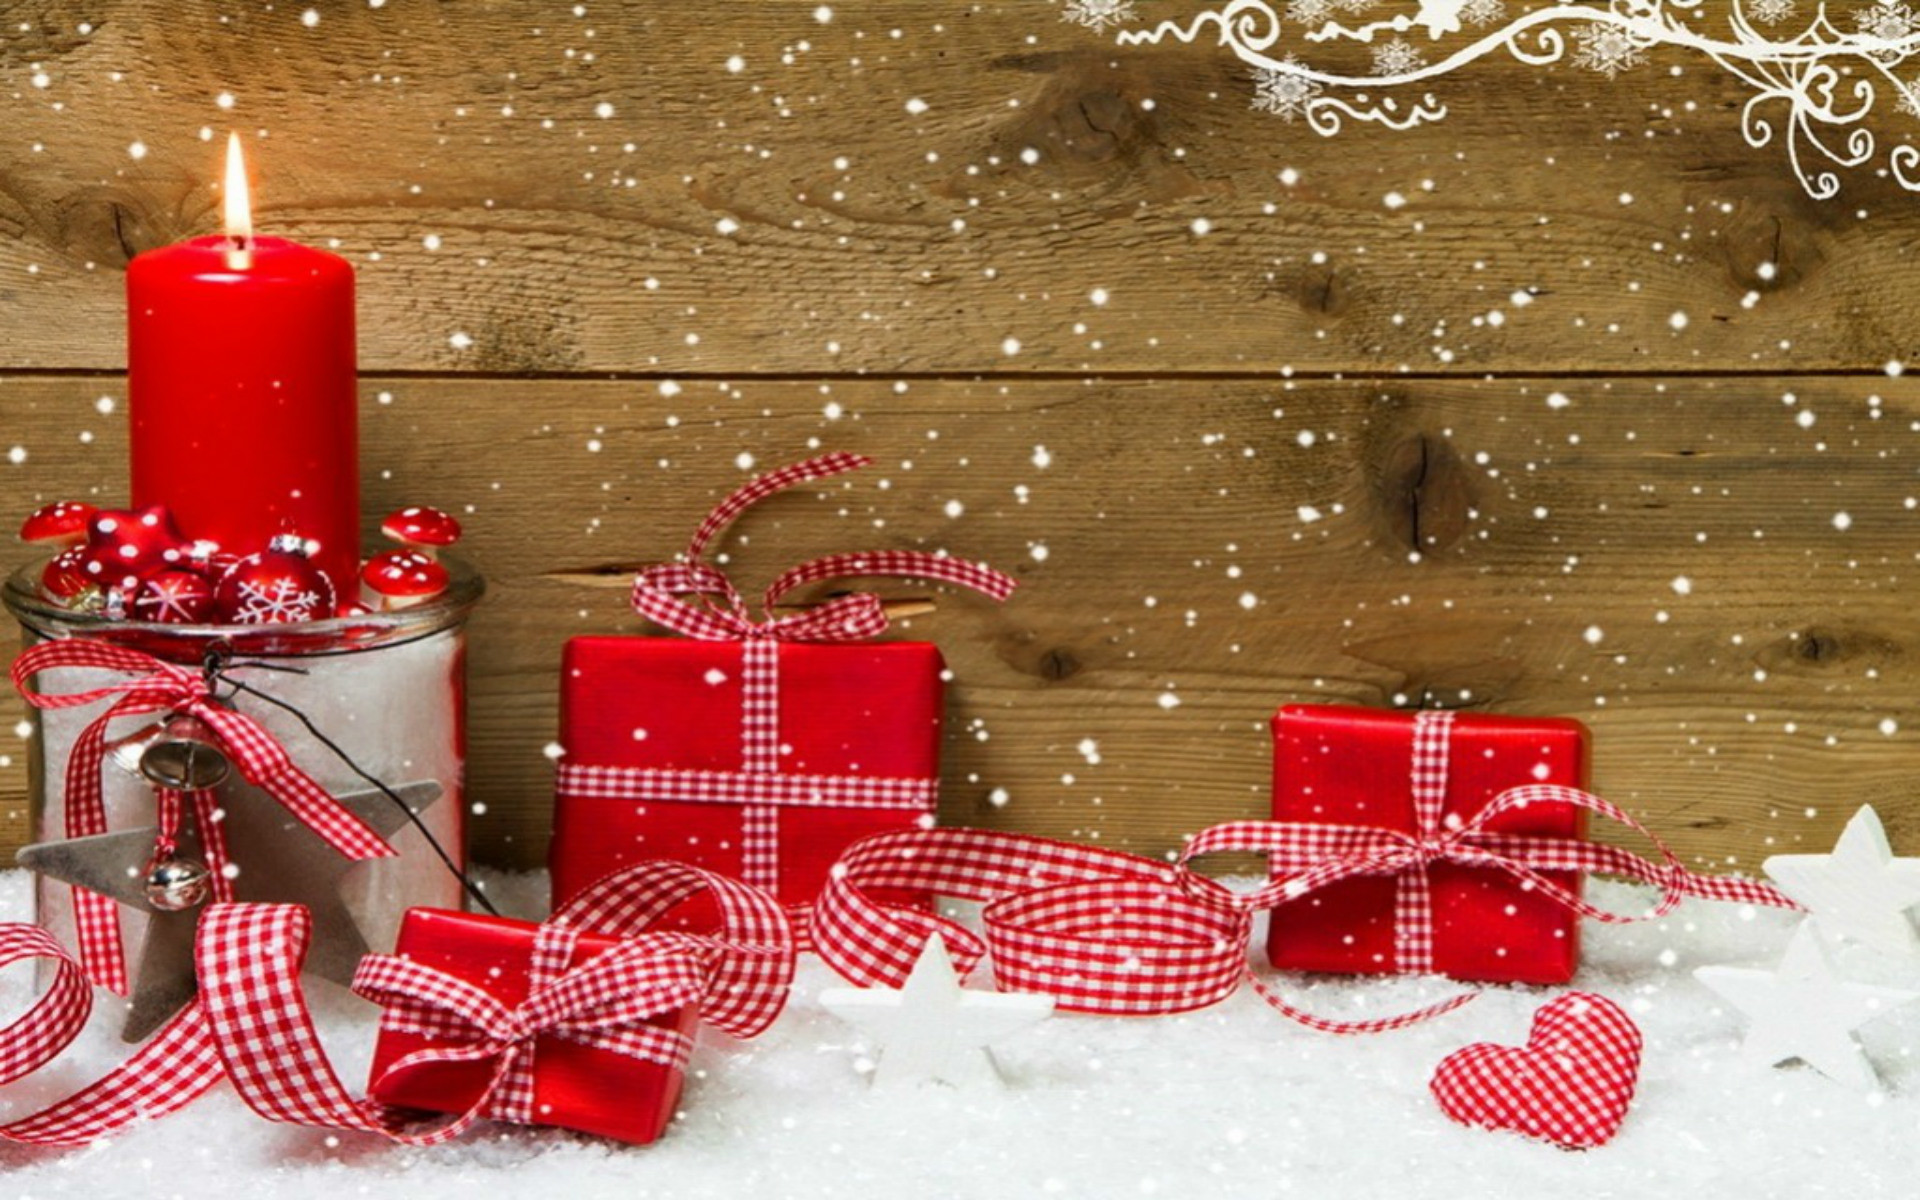 christmas gift background (43+ images)